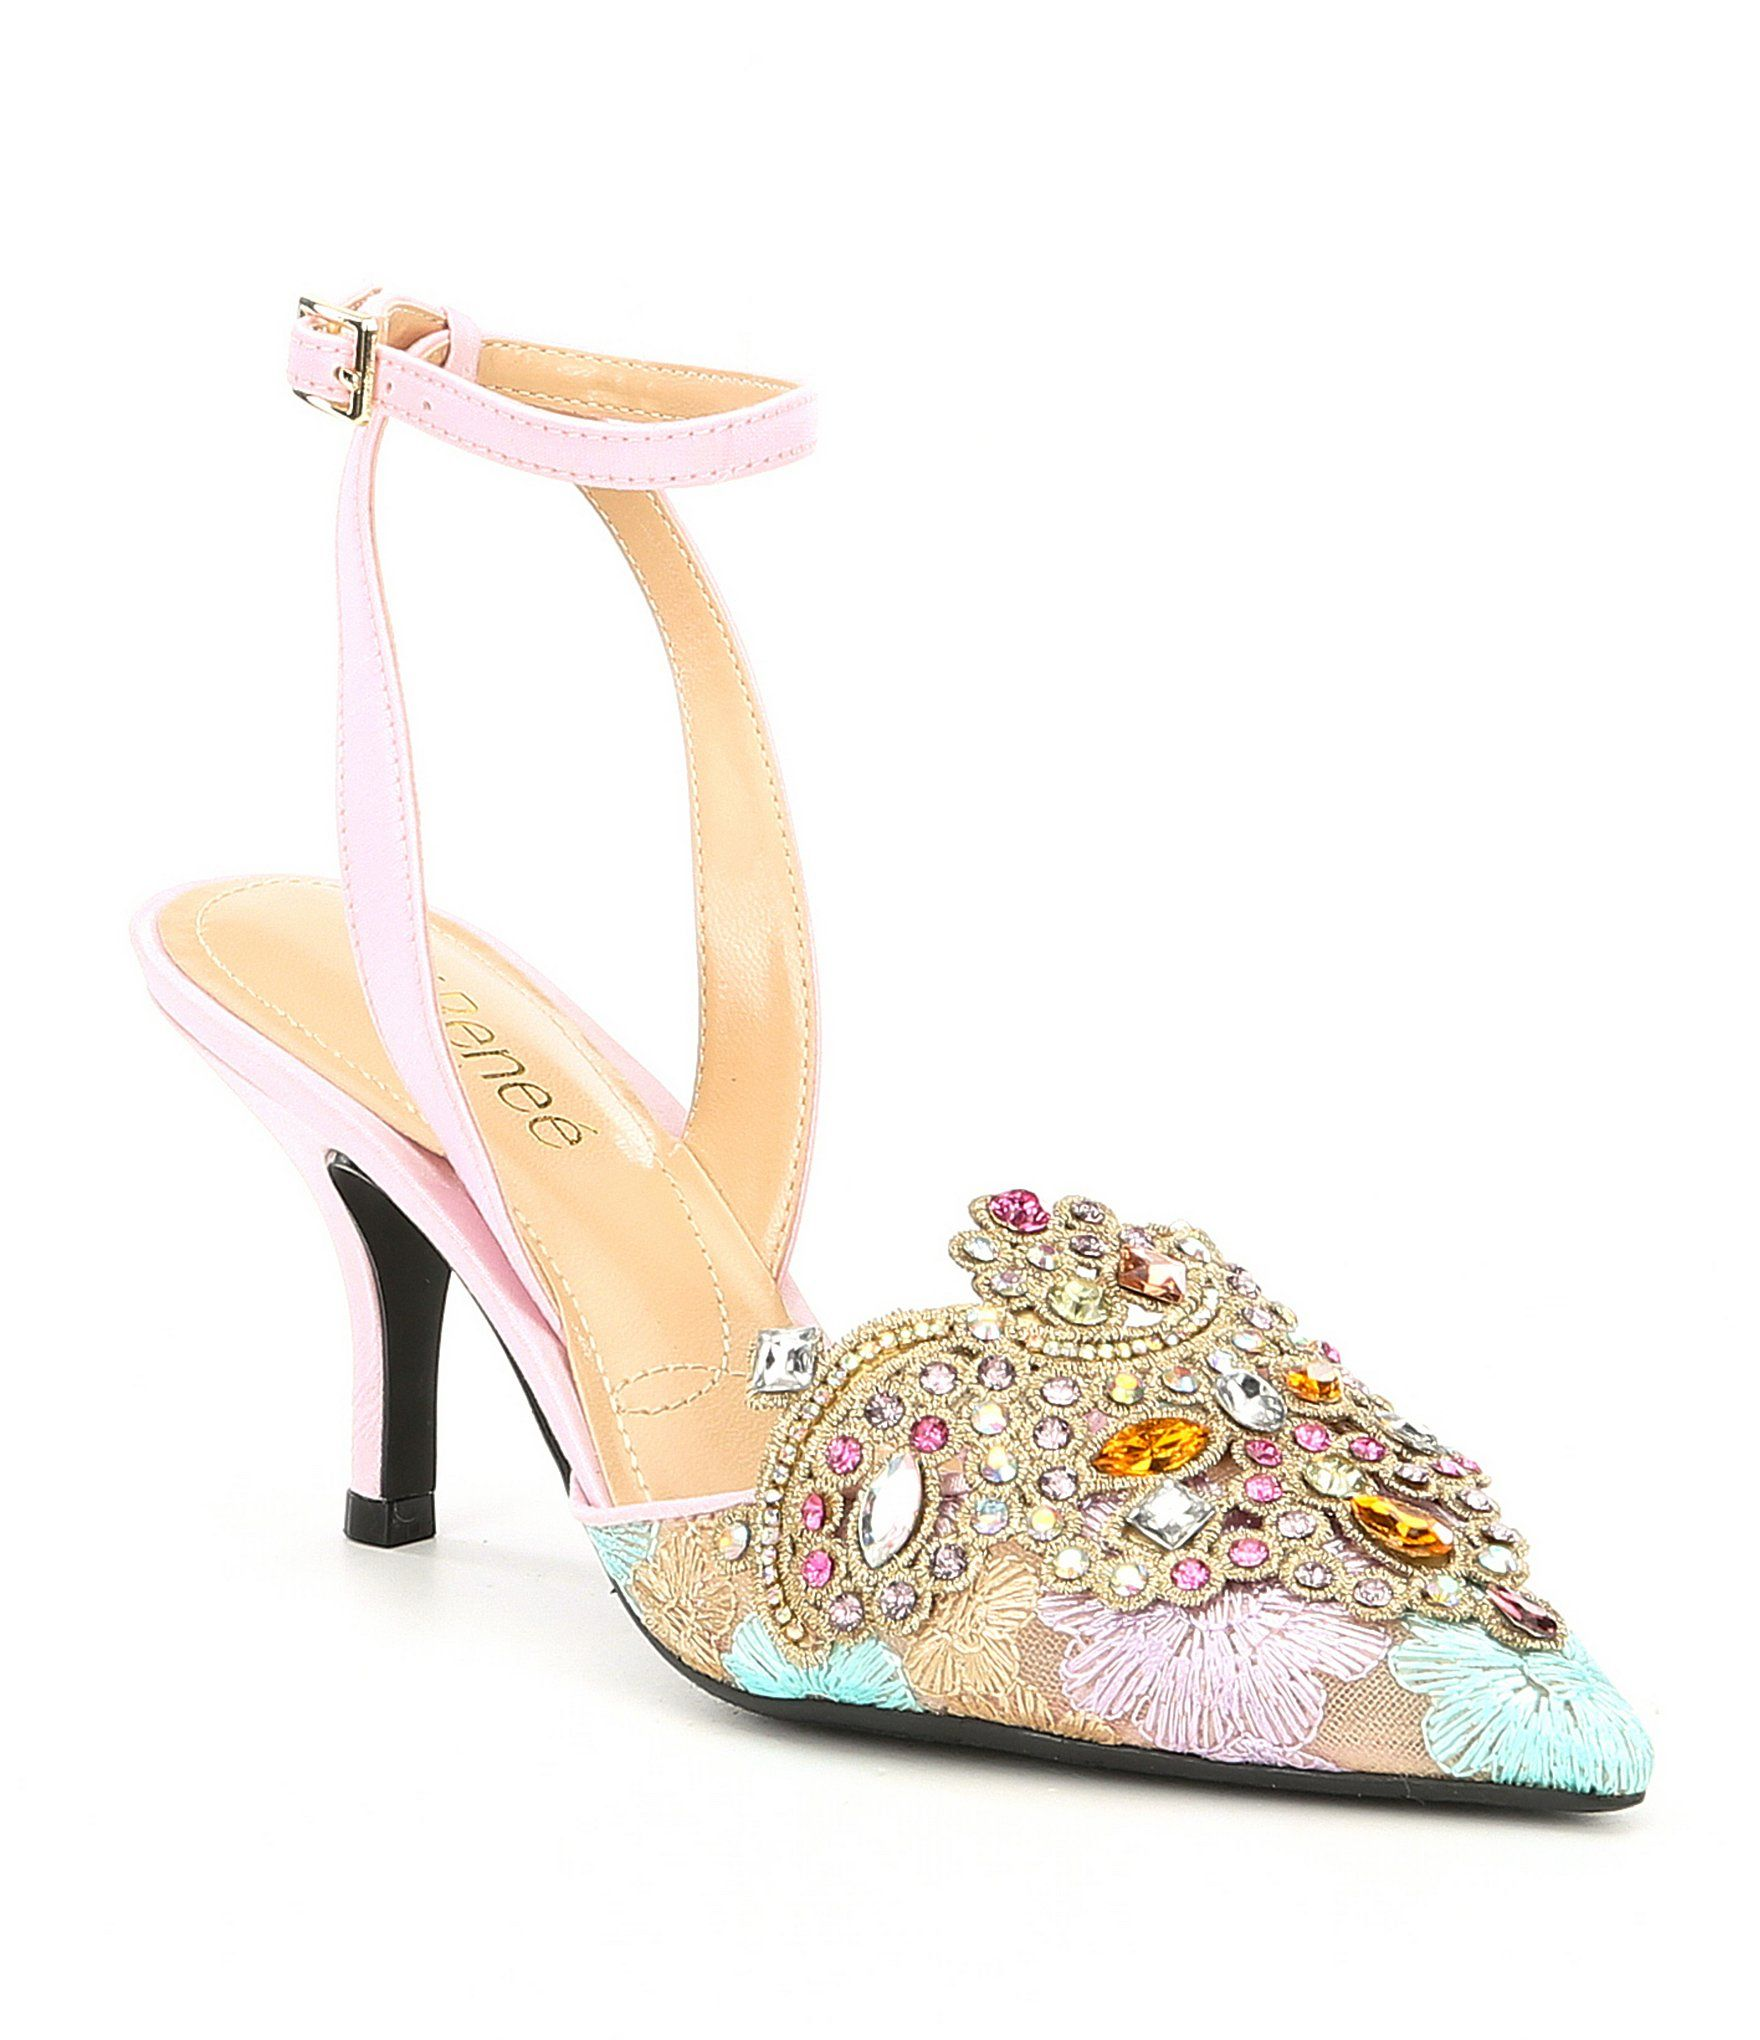 Desdemona Floral Mesh Multi Color Rhinestone Detail Ankle Strap Pumps